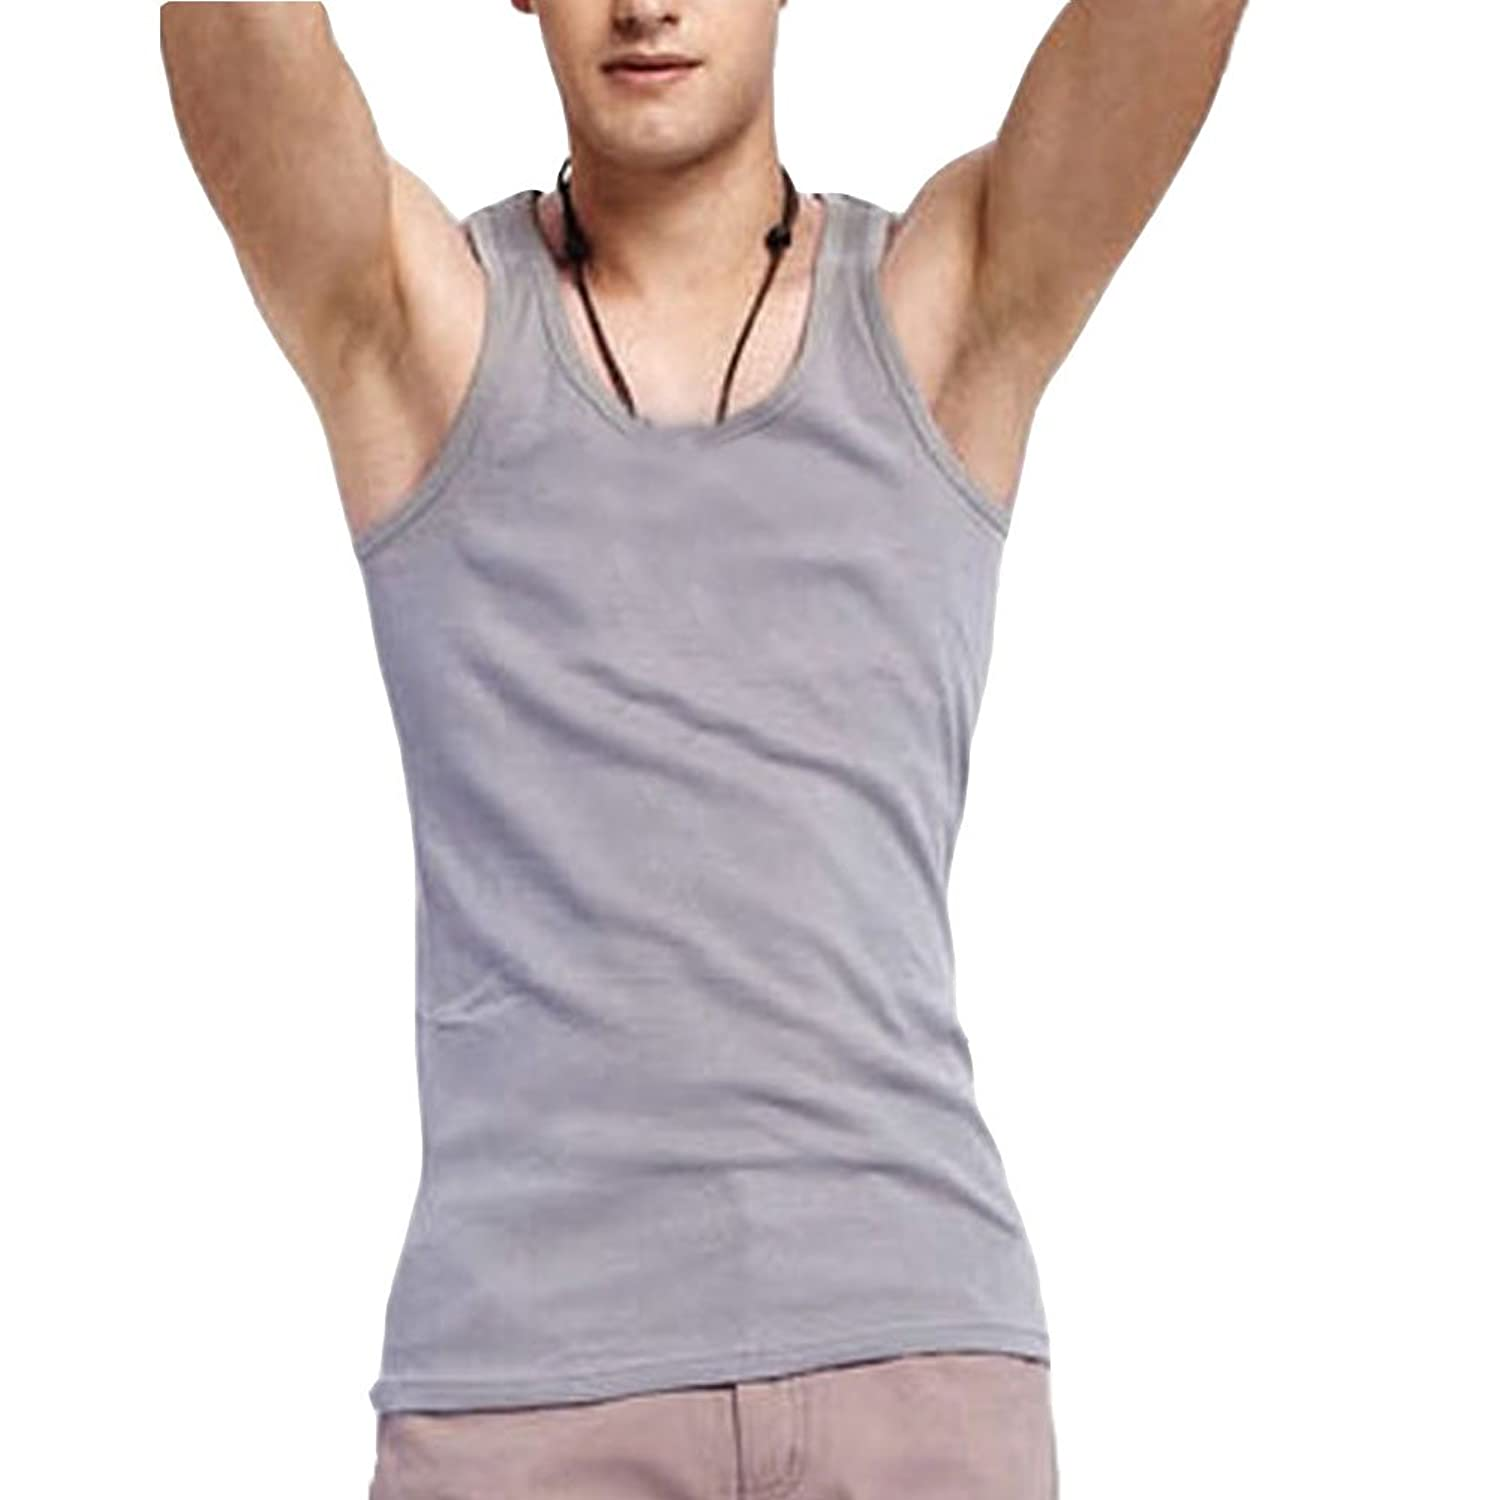 Linyuan ファッション Men's cotton elastic tank top タンクトップ fitness slim vest nightdress